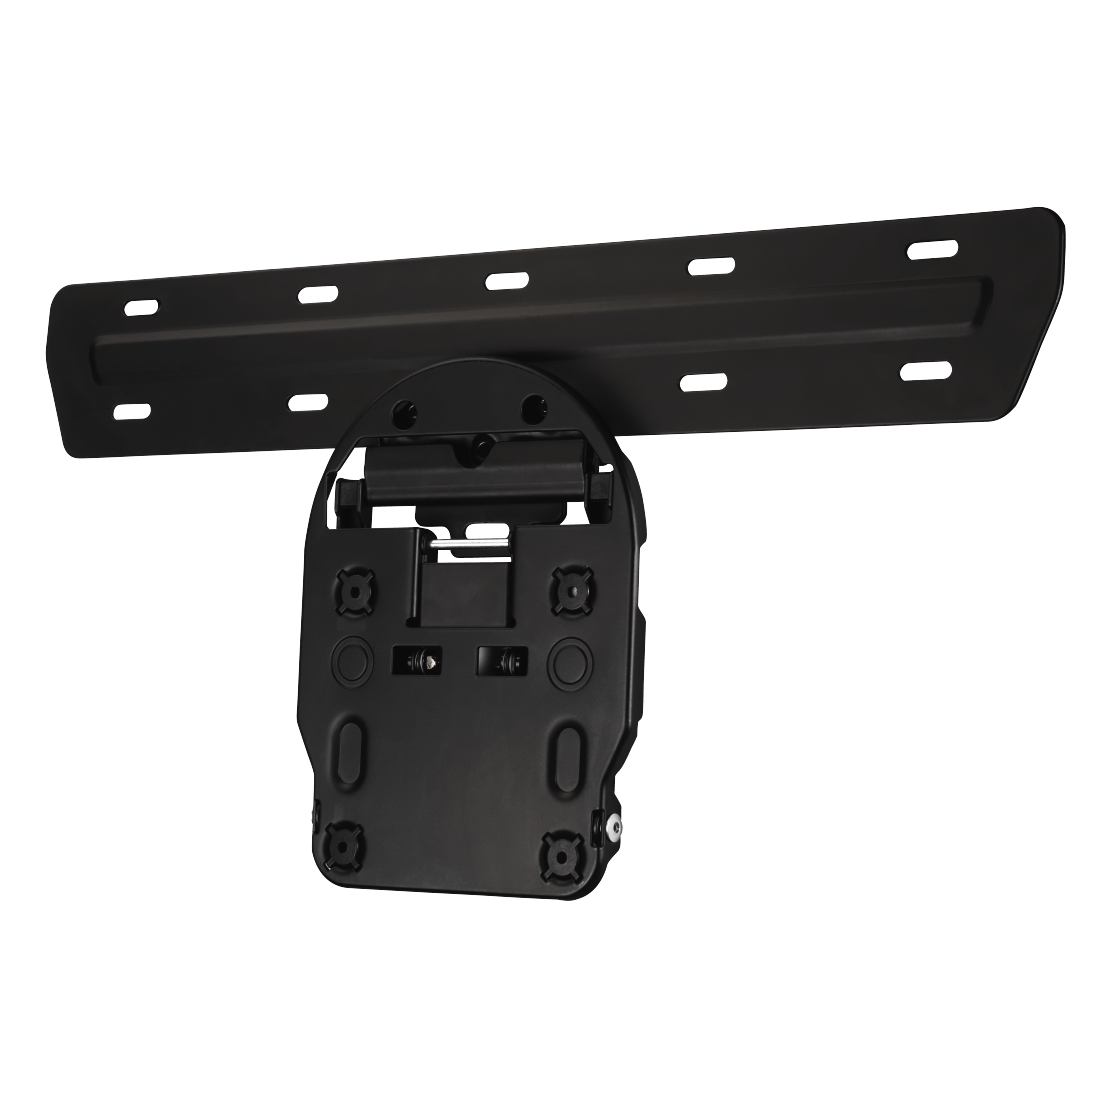 Image of (2019) QLED No Gap Wall Mount (49 - 65 Inch) With Tilt